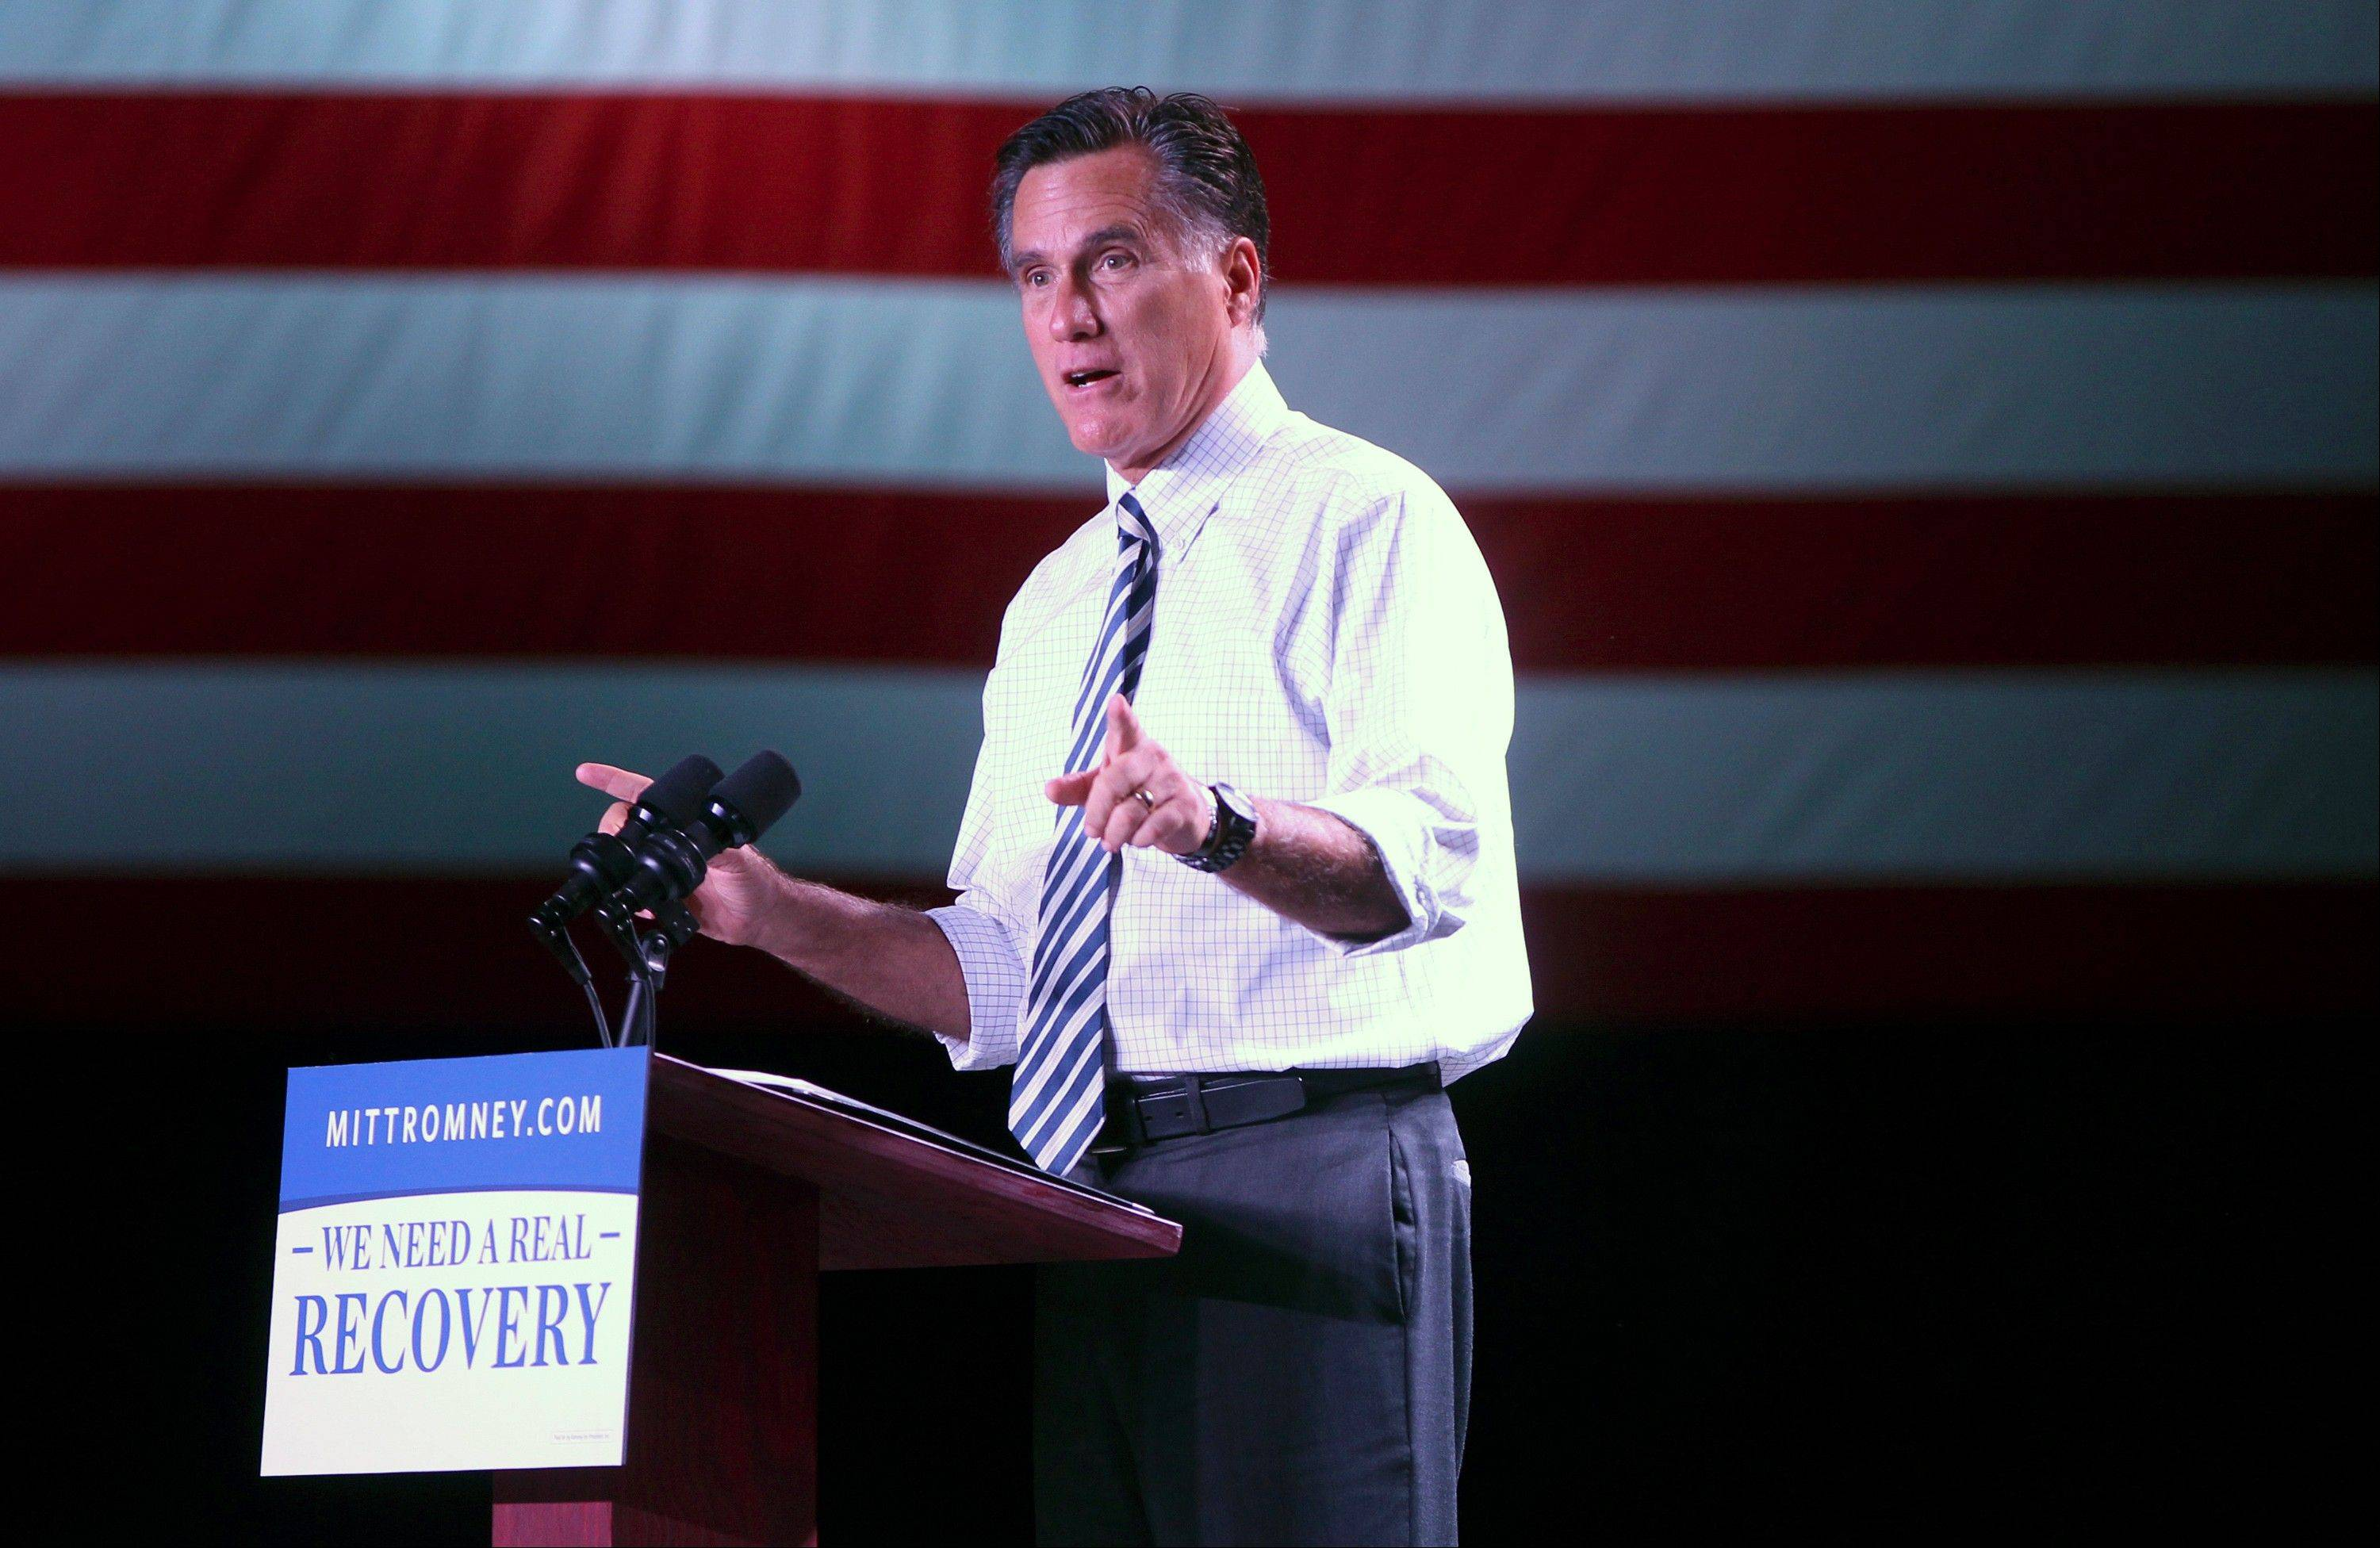 AP poll: Romney erases Obama advantage among women